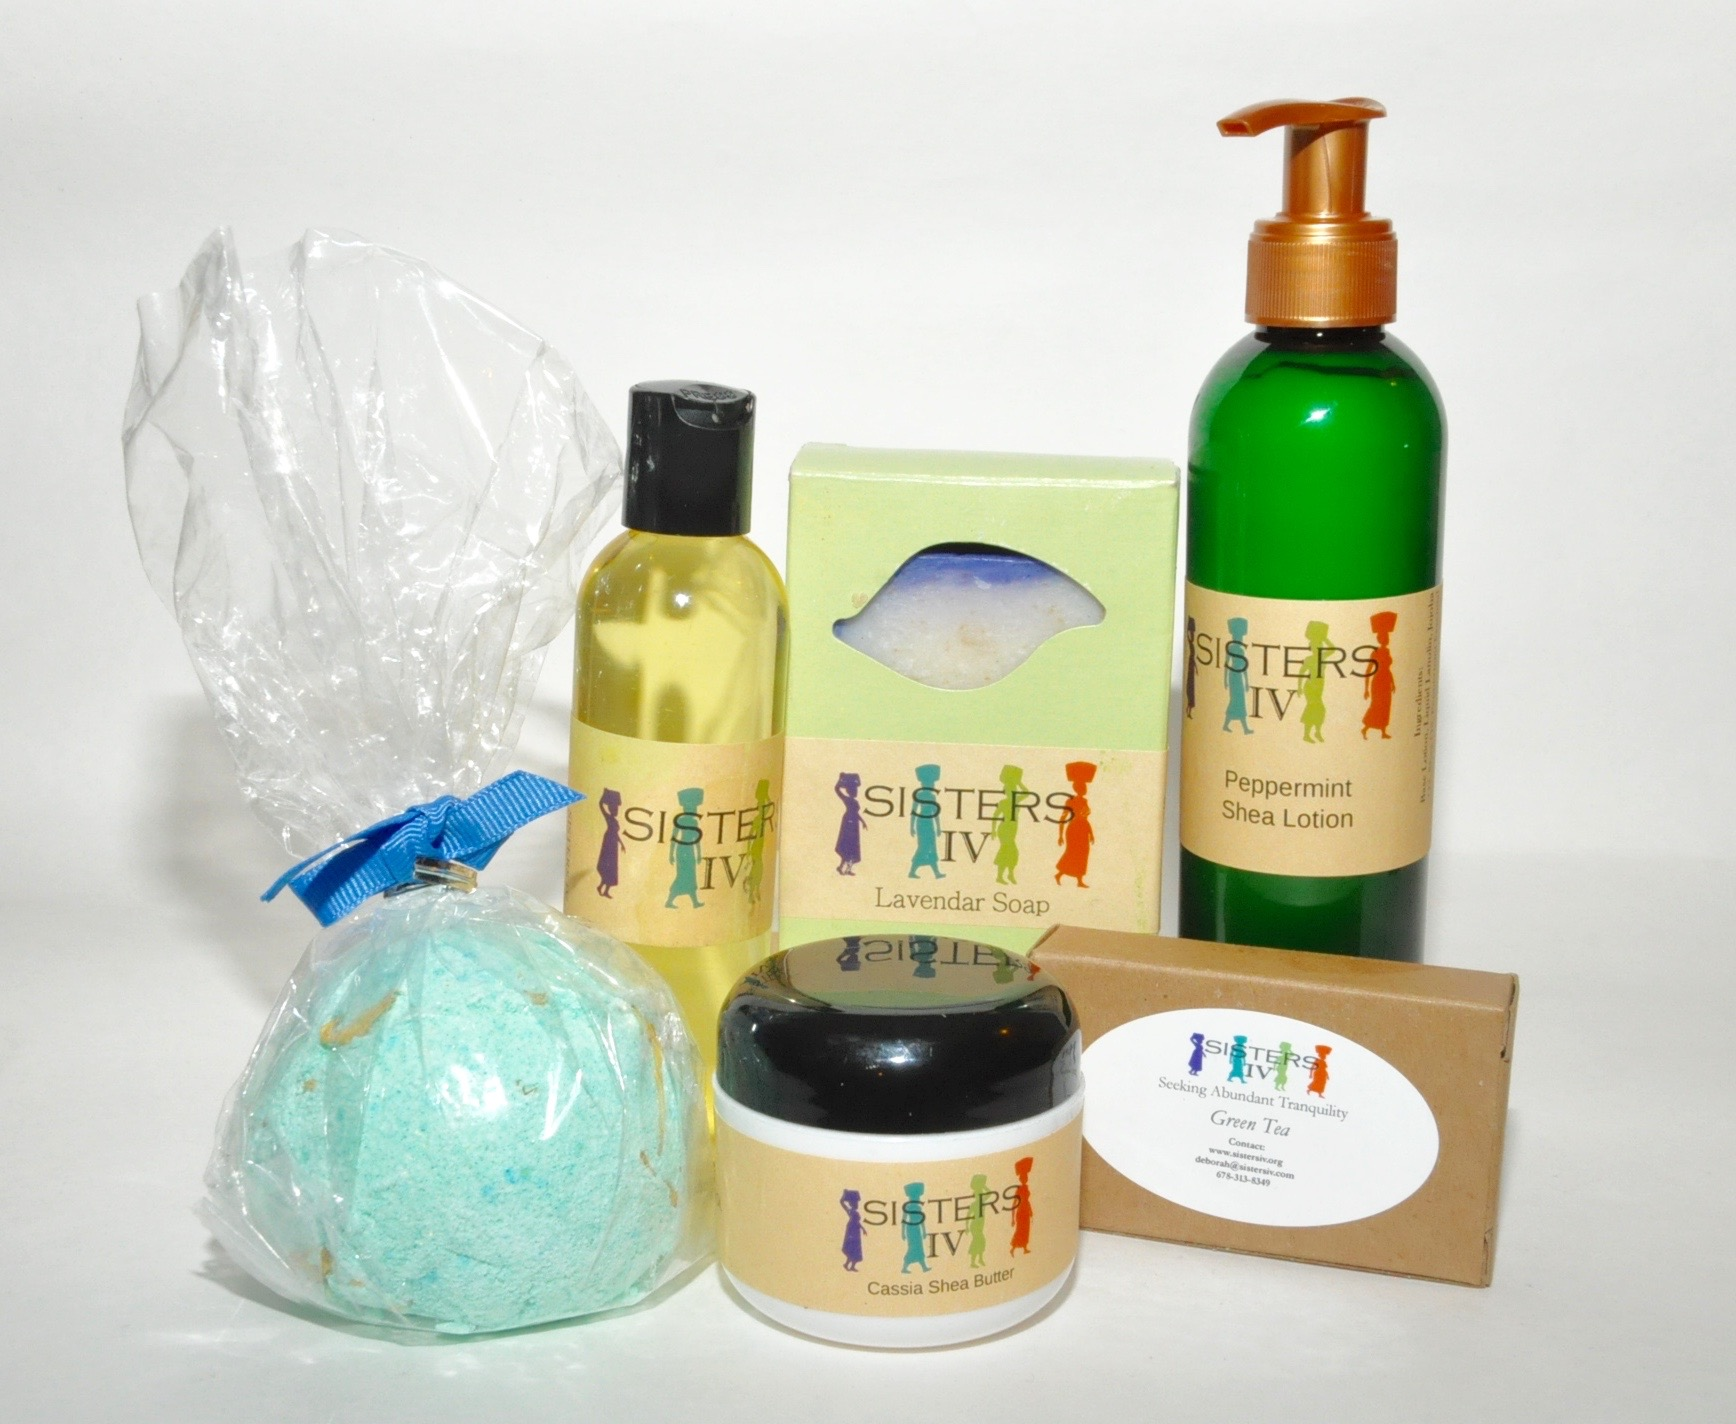 Product Box or Gift Set